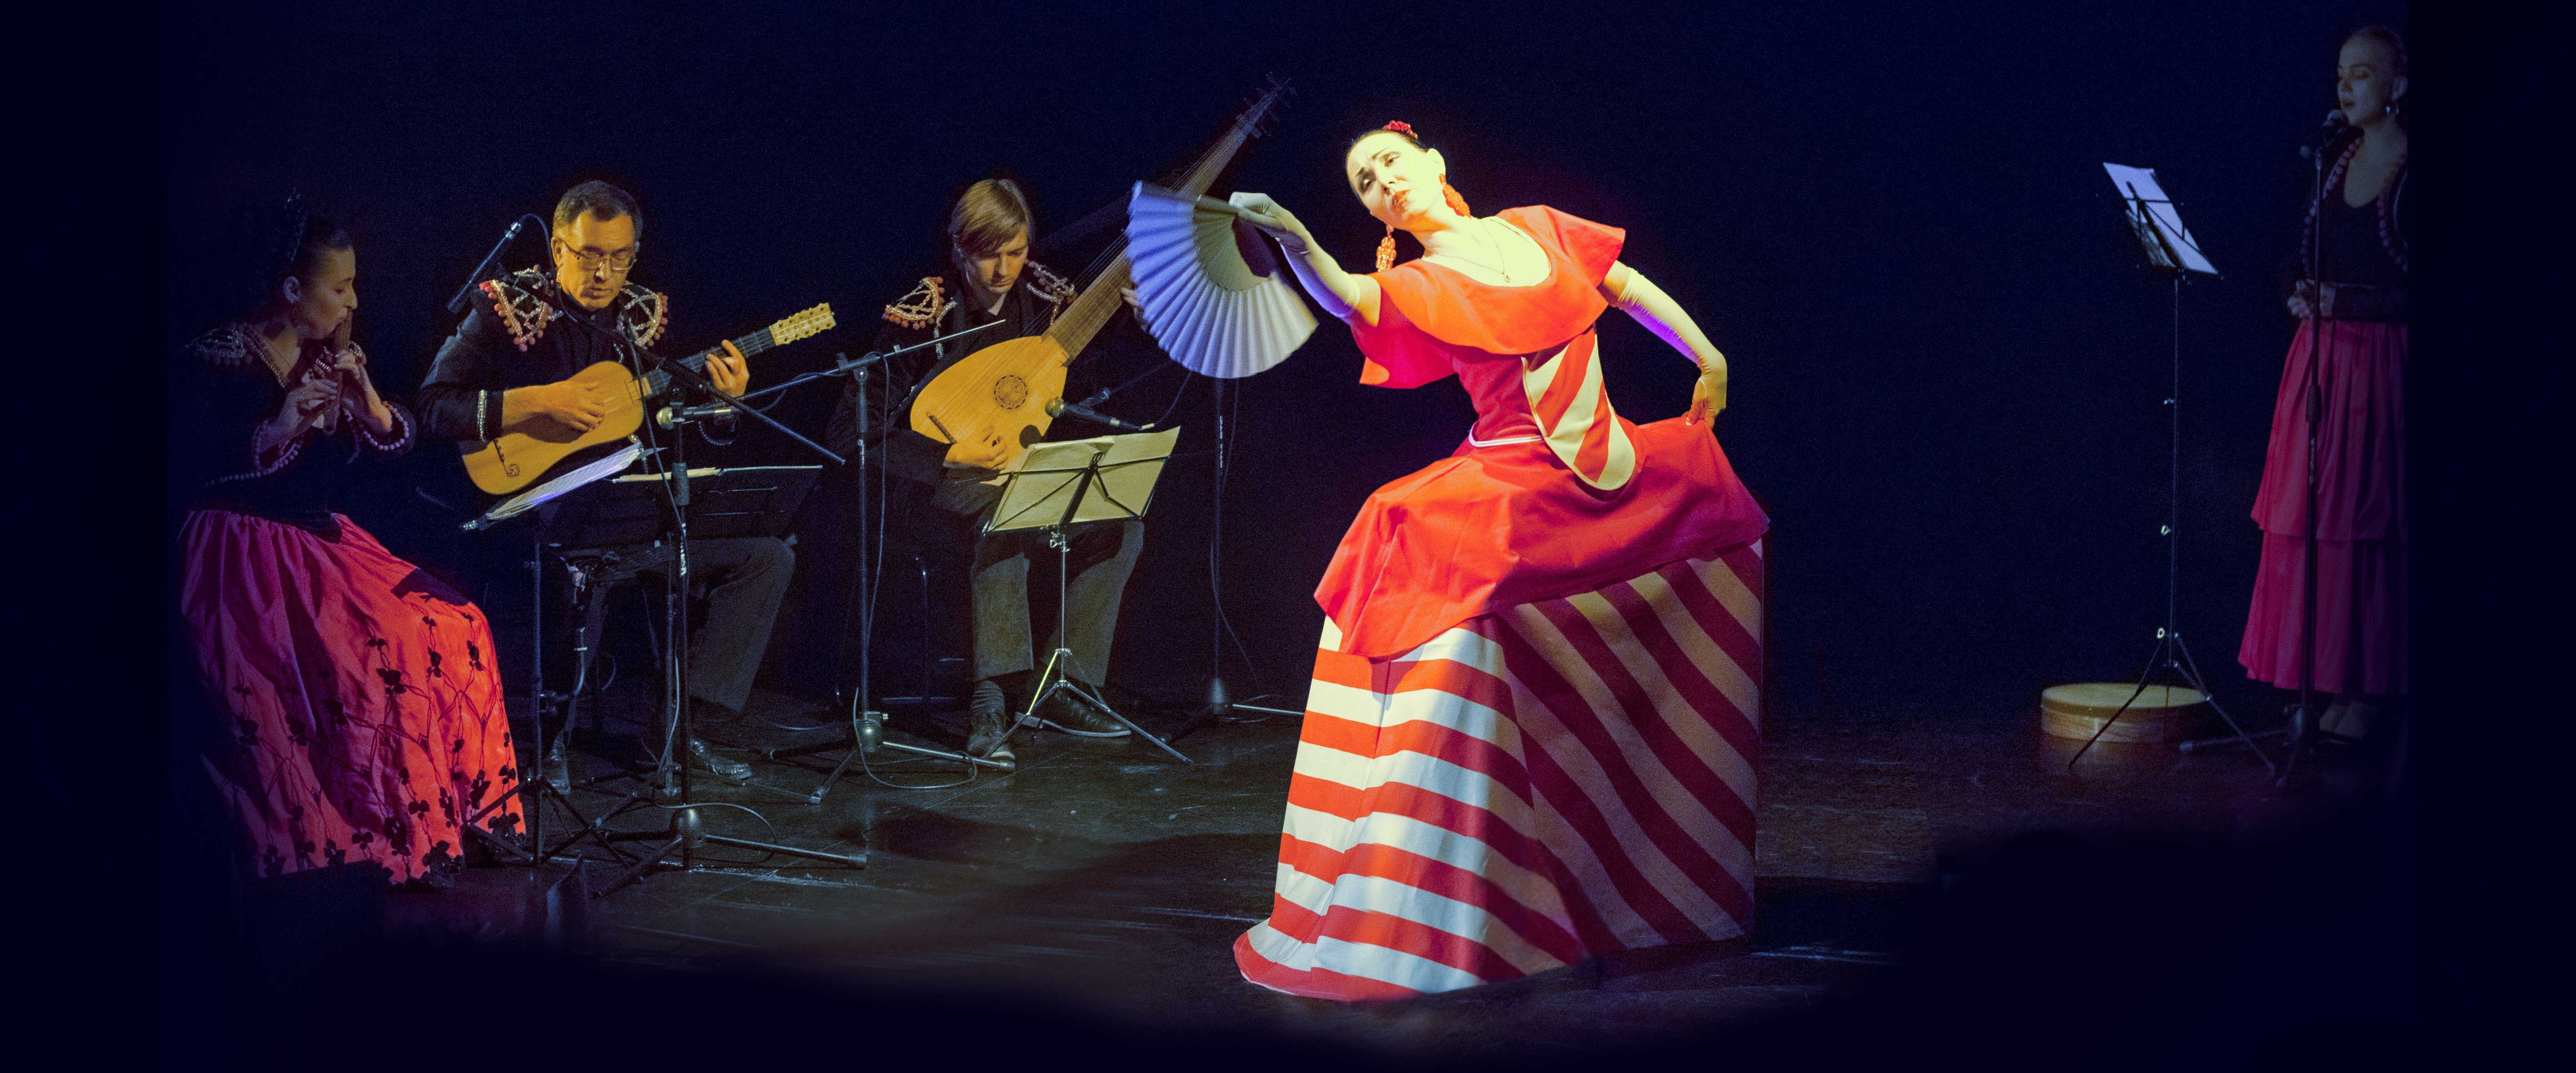 flamenco and spanish folk dancer Amor.jpg